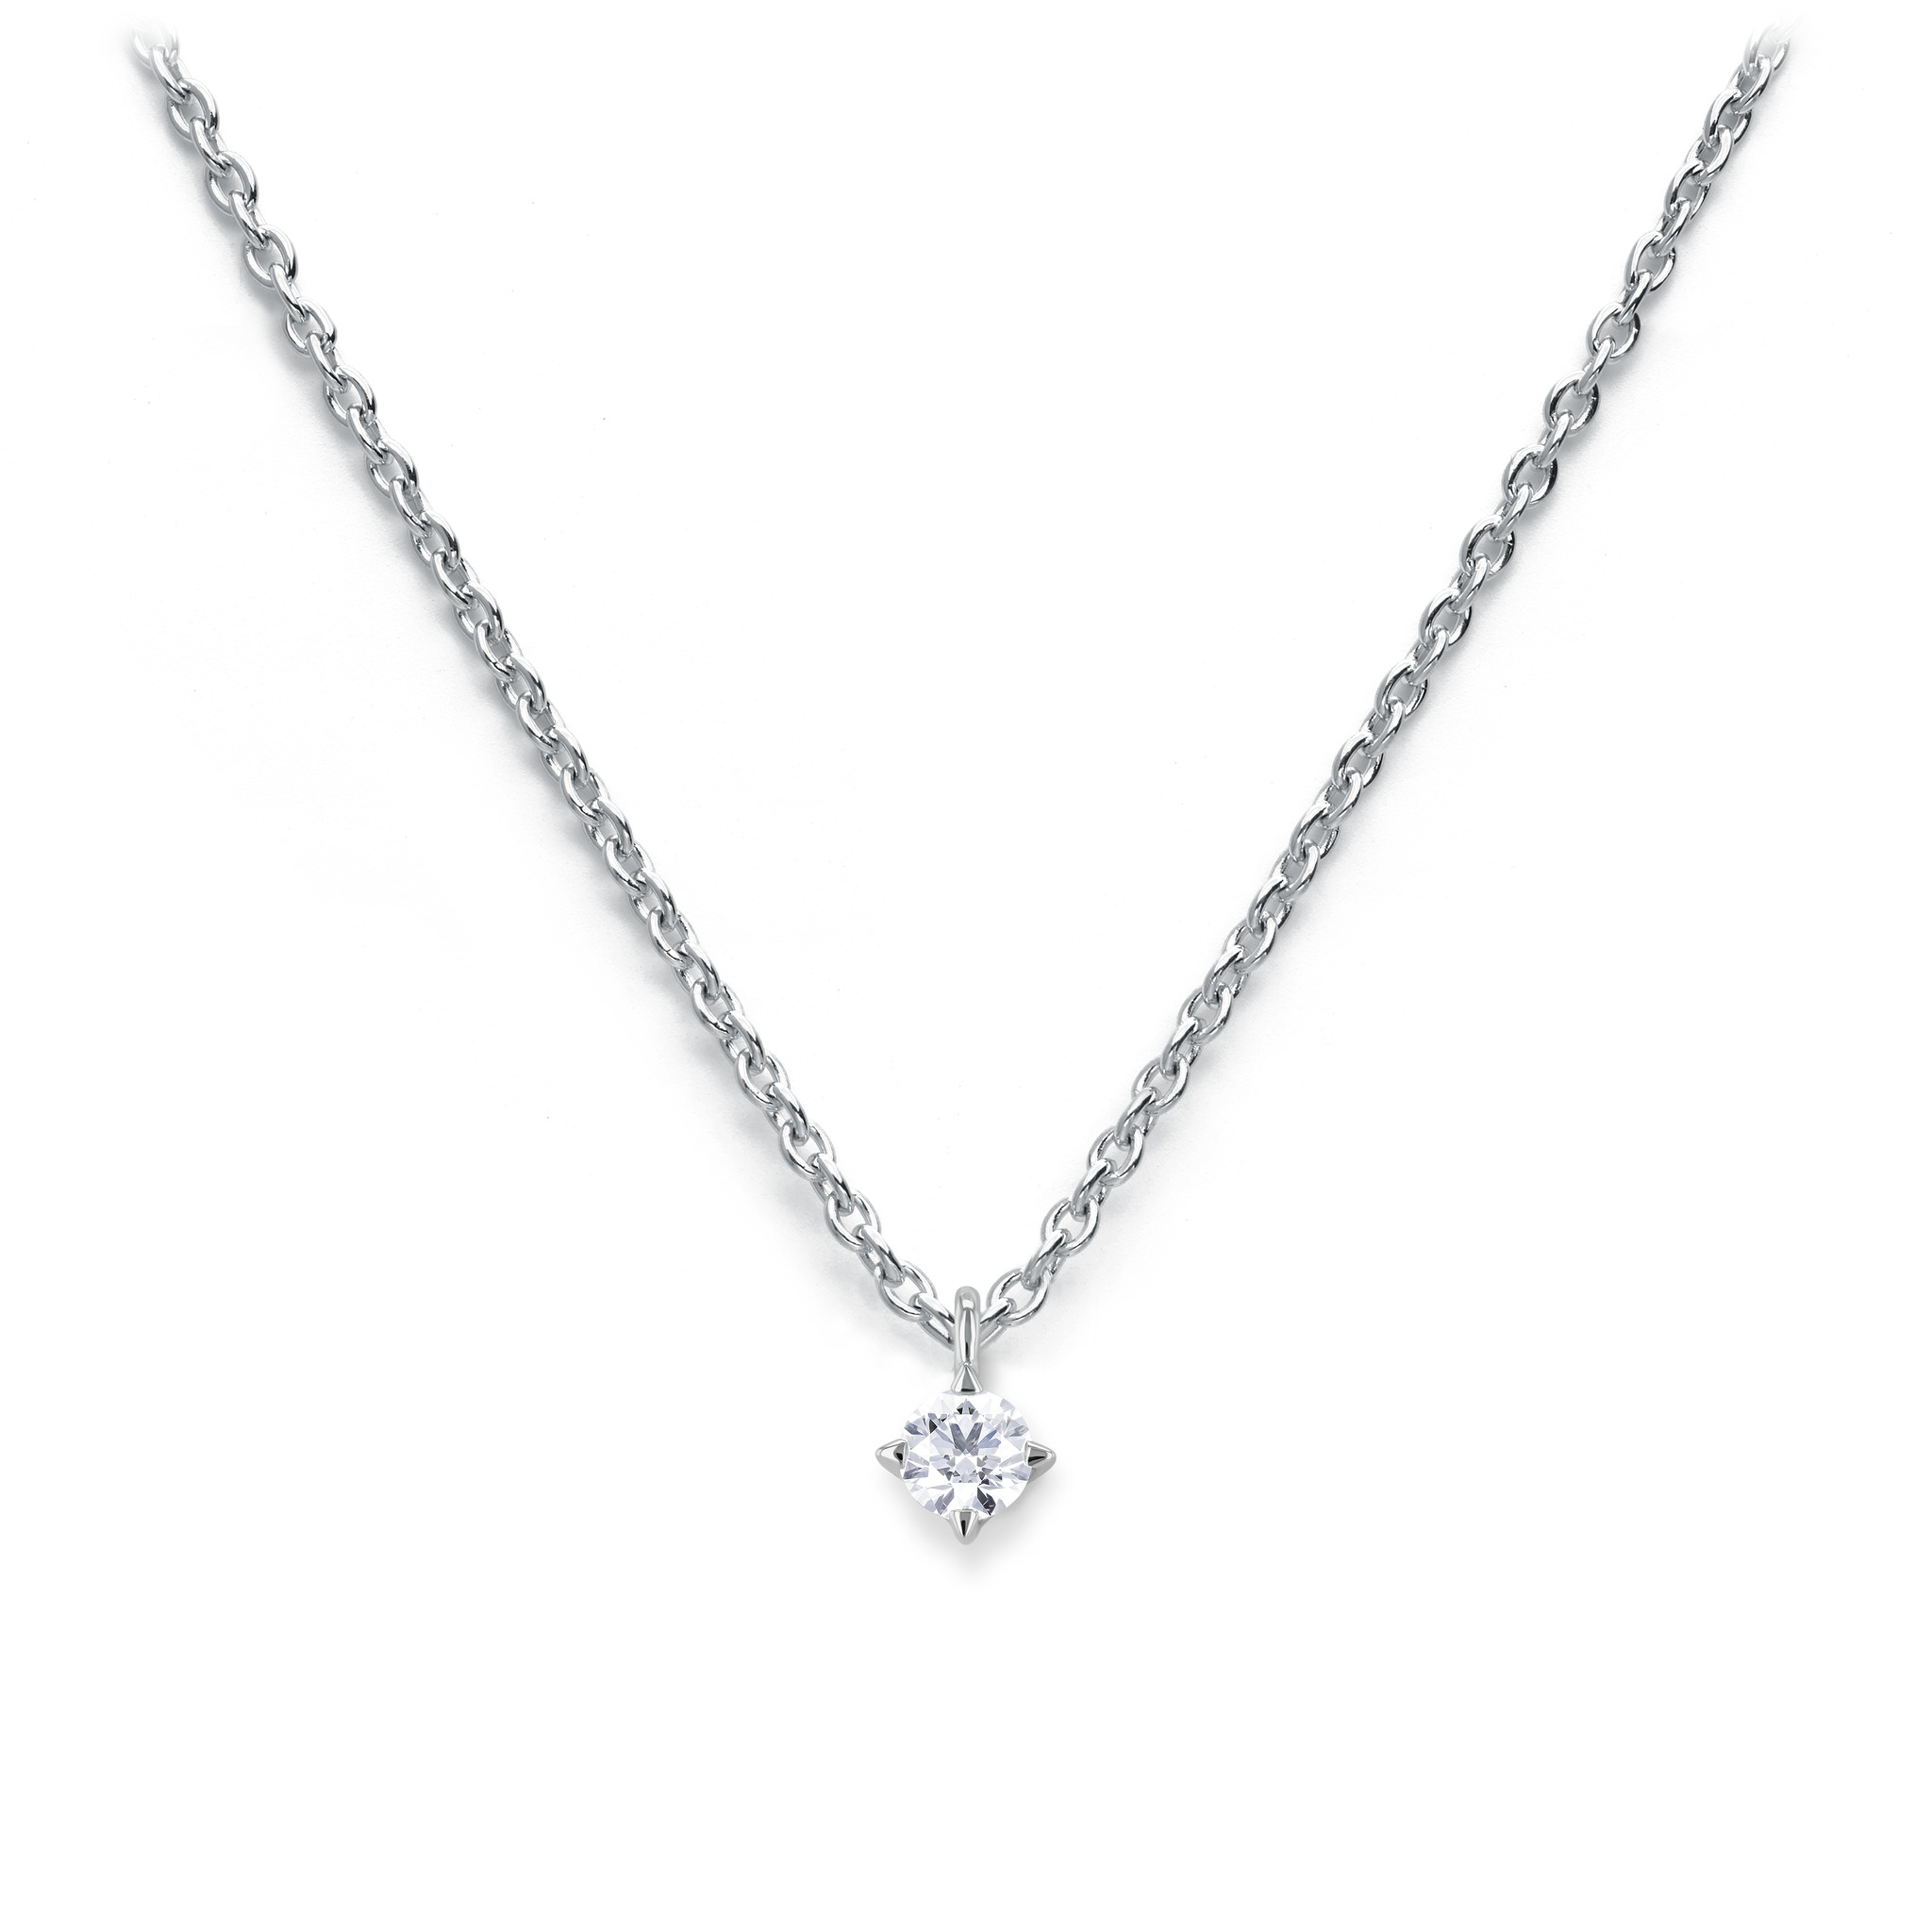 Solitaire necklace with diamond